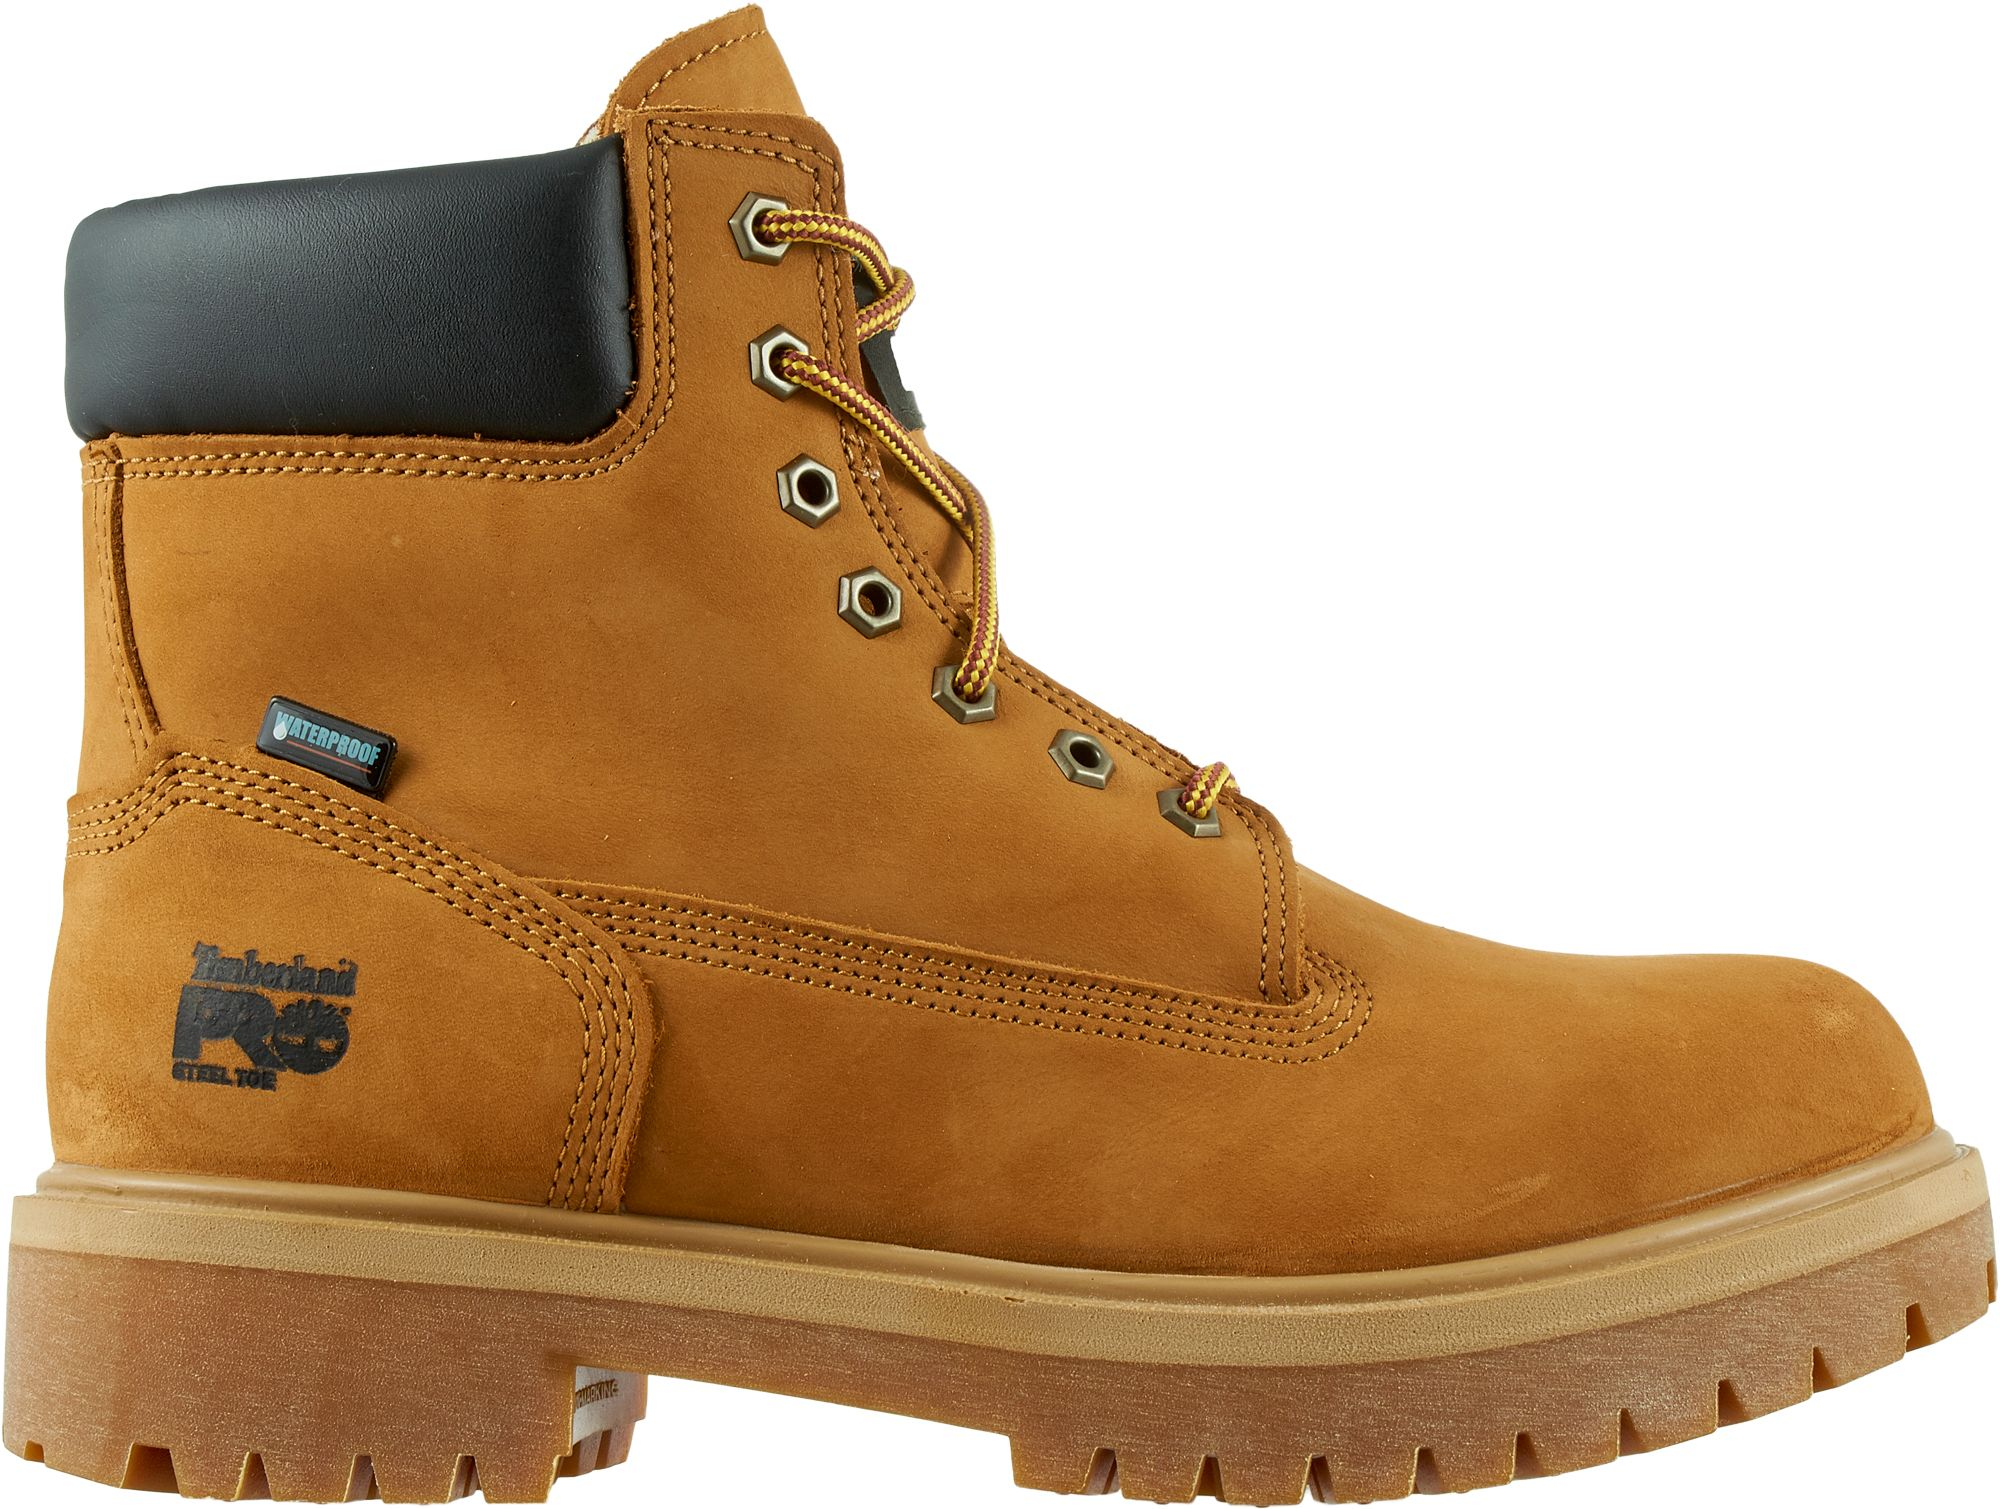 Timberland PRO Men&39s Direct Attach 6&39&39 Waterproof 200g Steel Toe